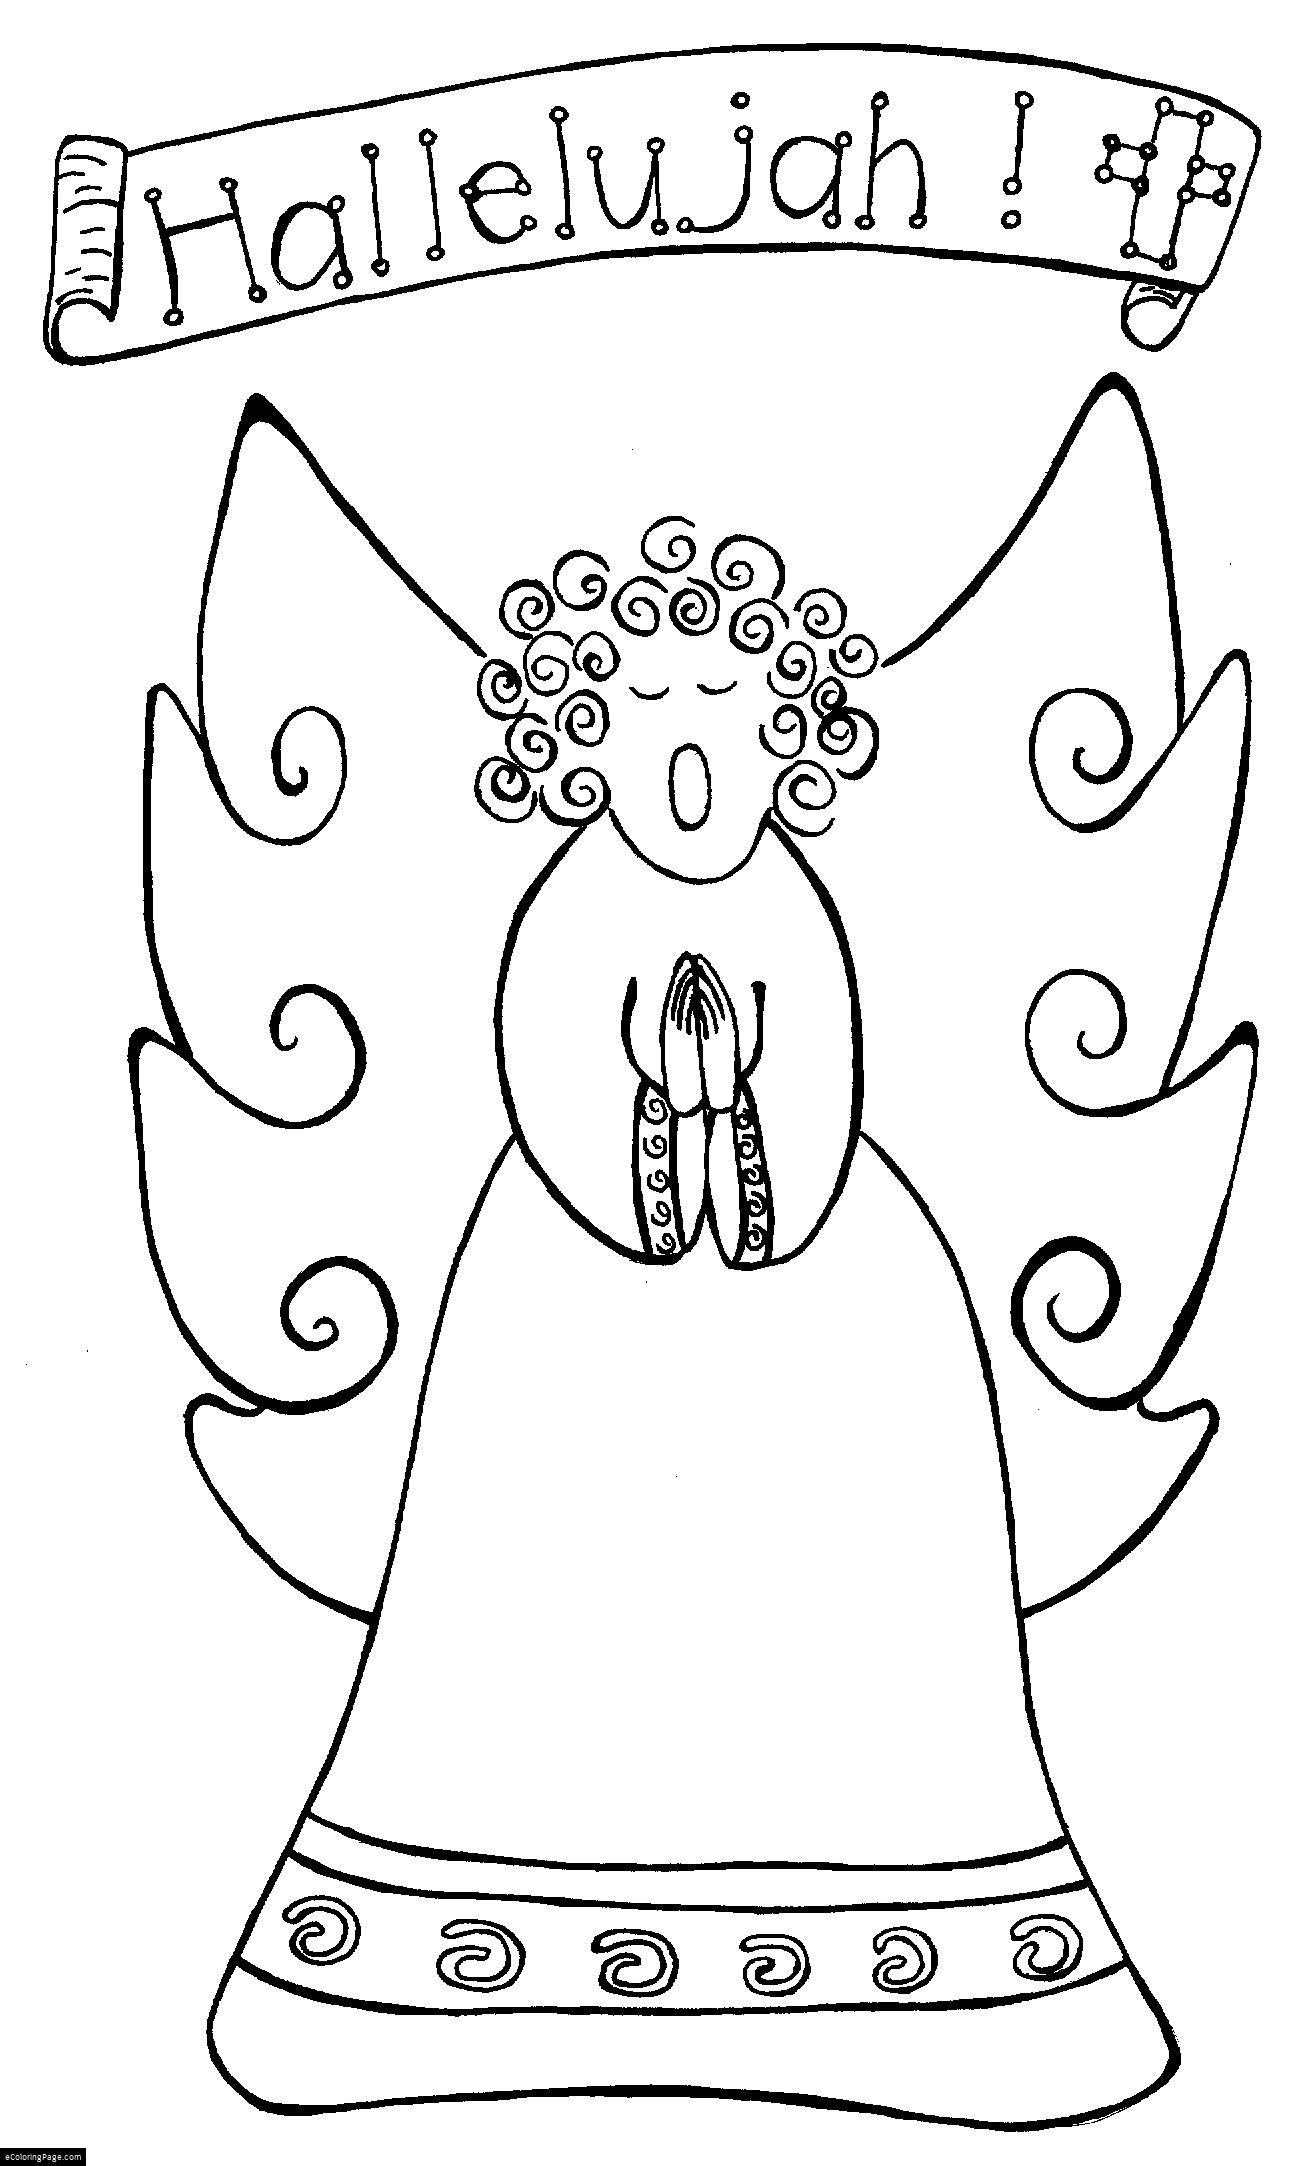 Angel Singing Hallelujah Coloring Page For Kids Printable Angel